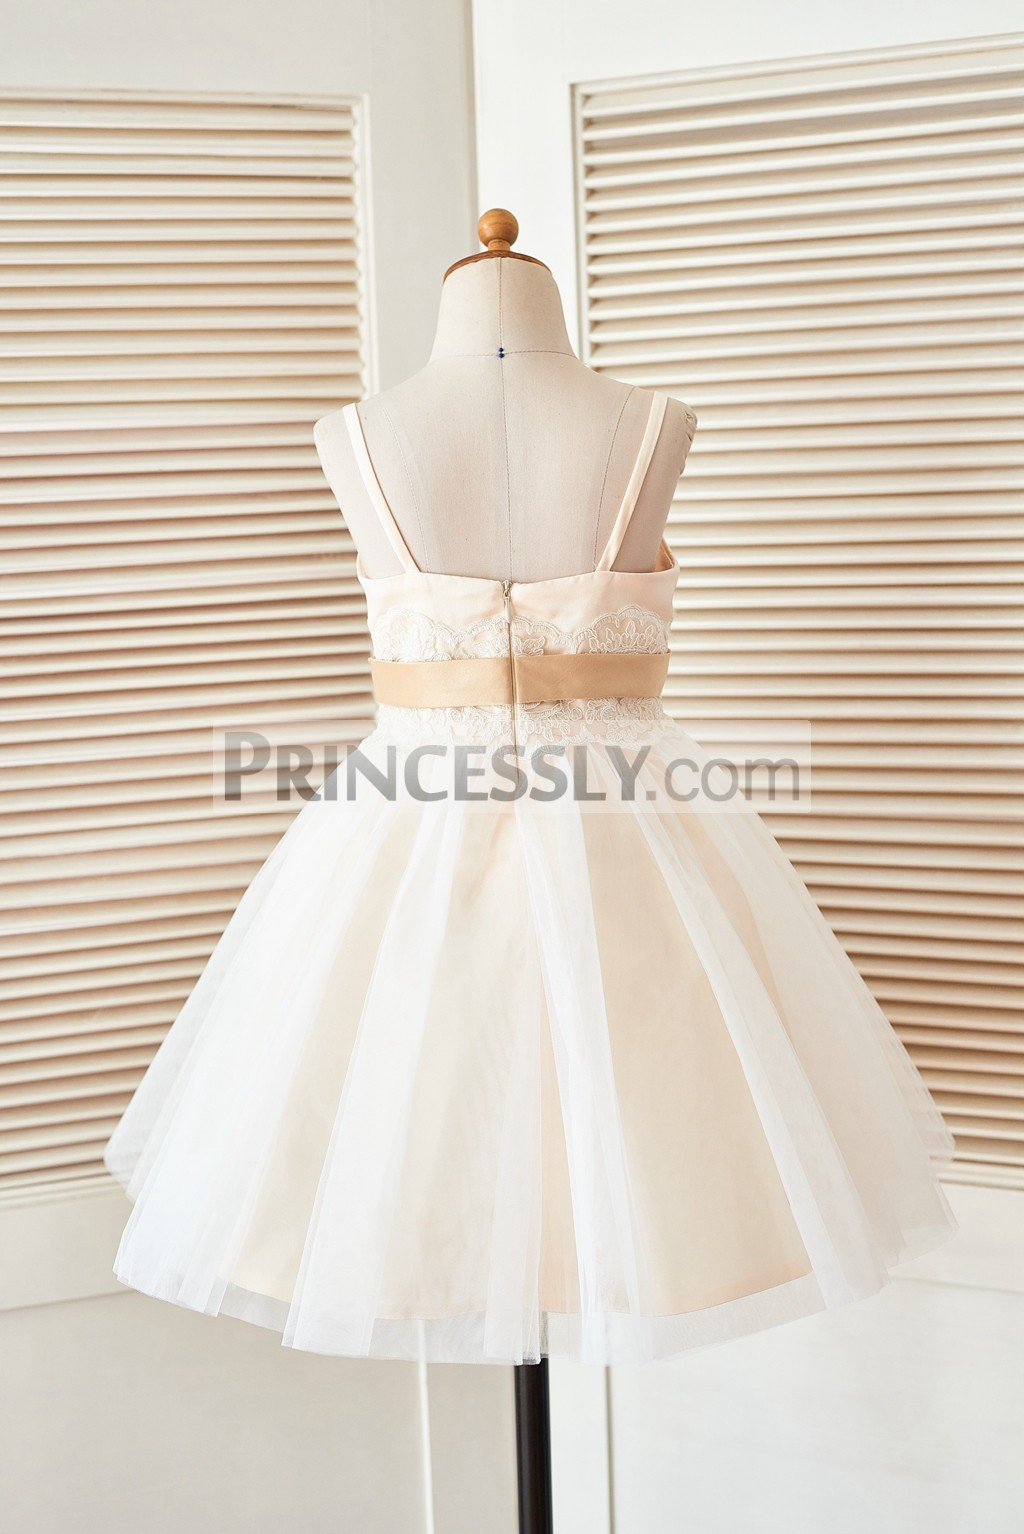 Spaghetti straps backless ivory tulle wedding baby girl dress